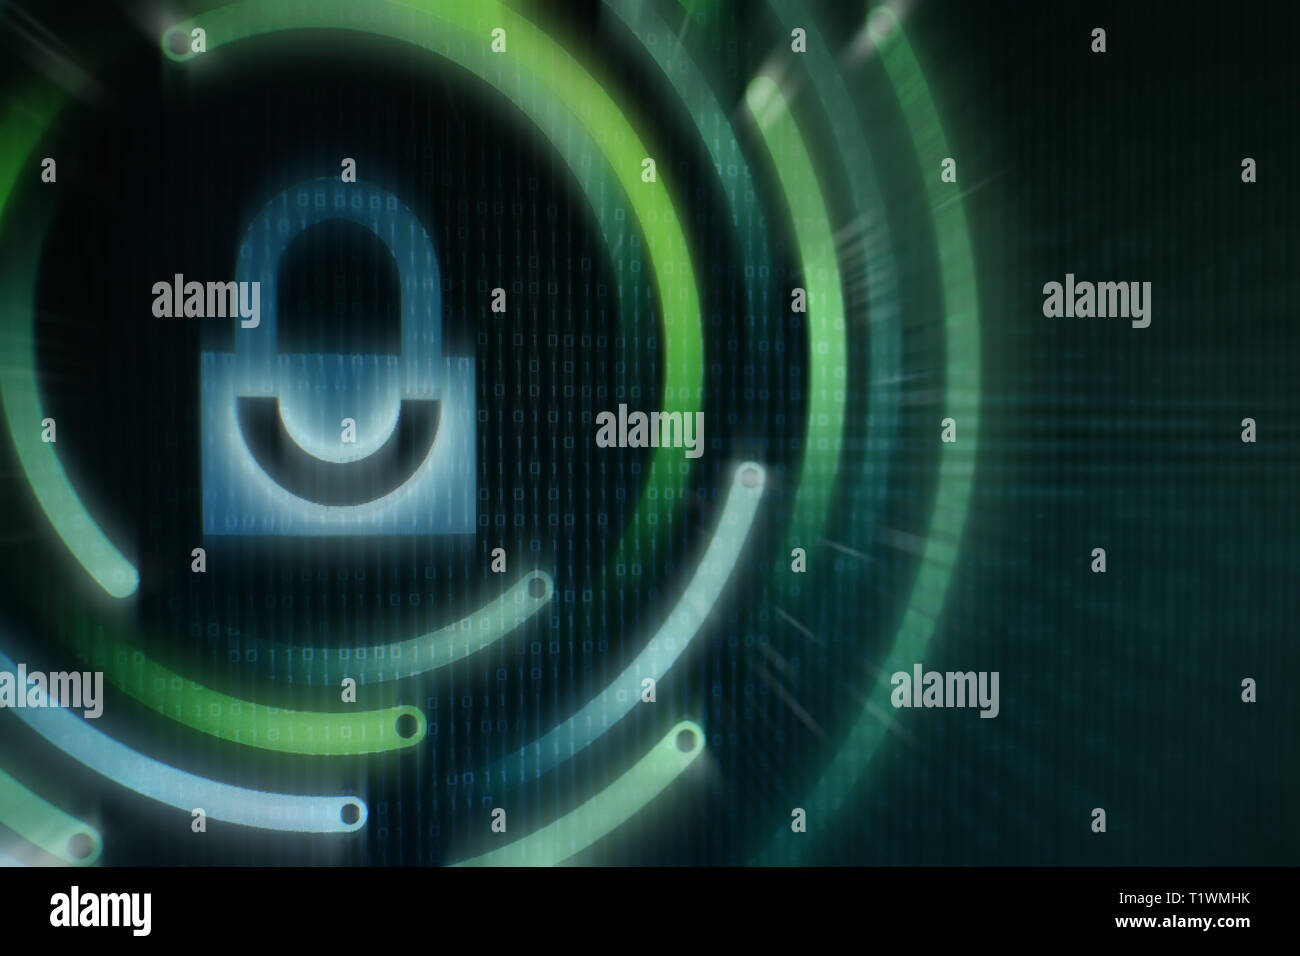 White graphic symbol of a padlock on green binary computer display - computer data protection. Internet Business Cyber security system concept - Stock Image